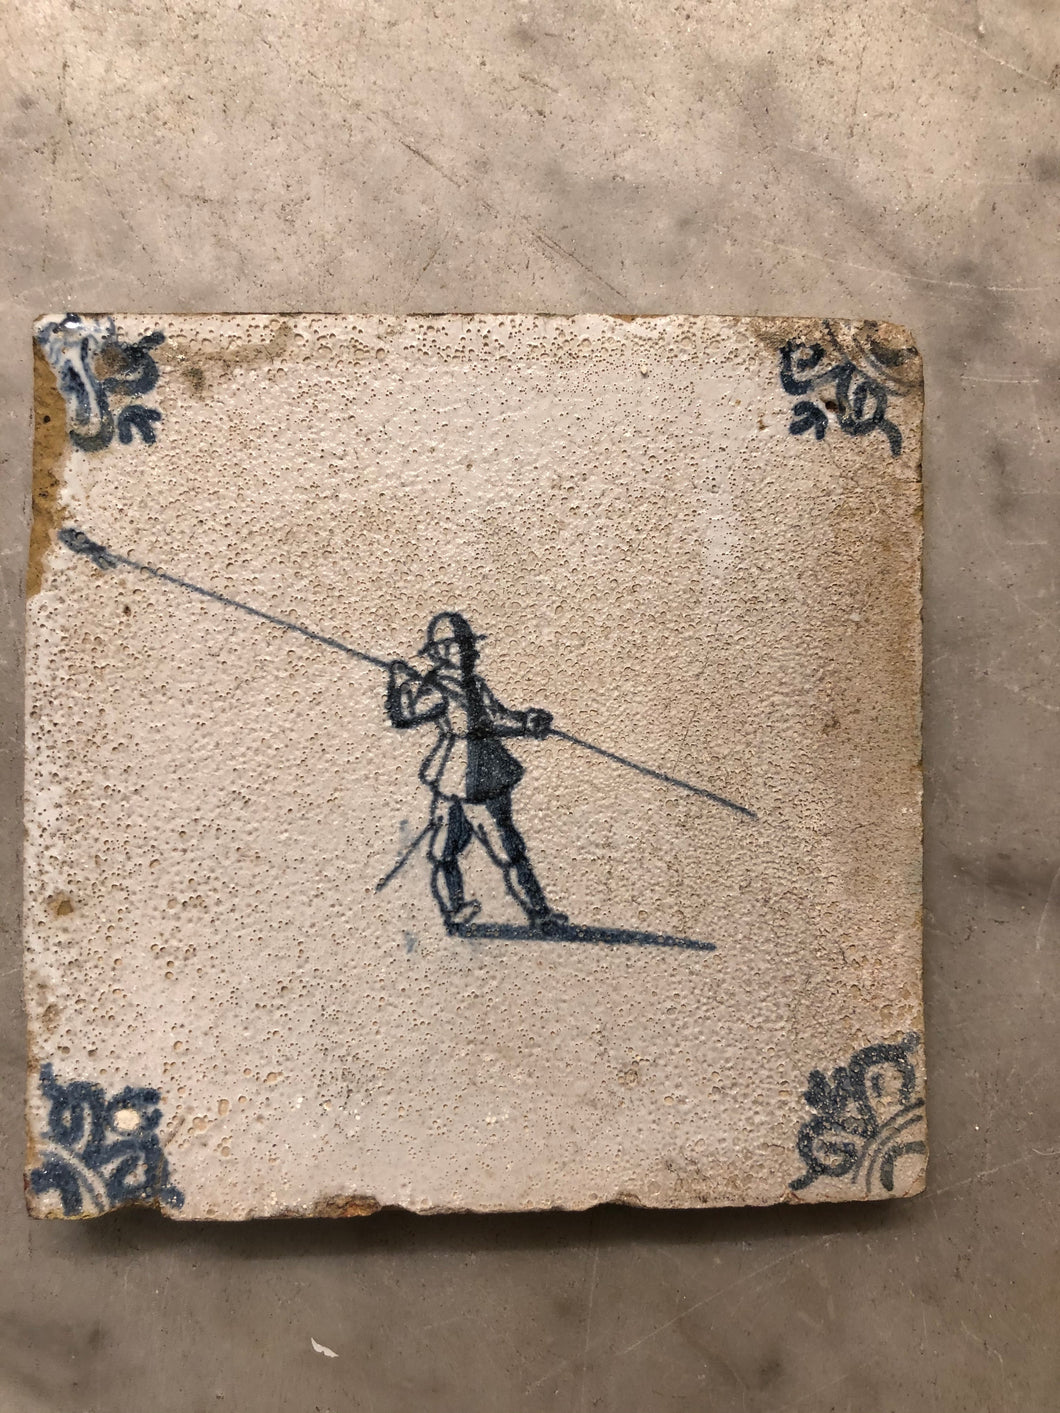 17 century delft handpainted dutch tile with soldier